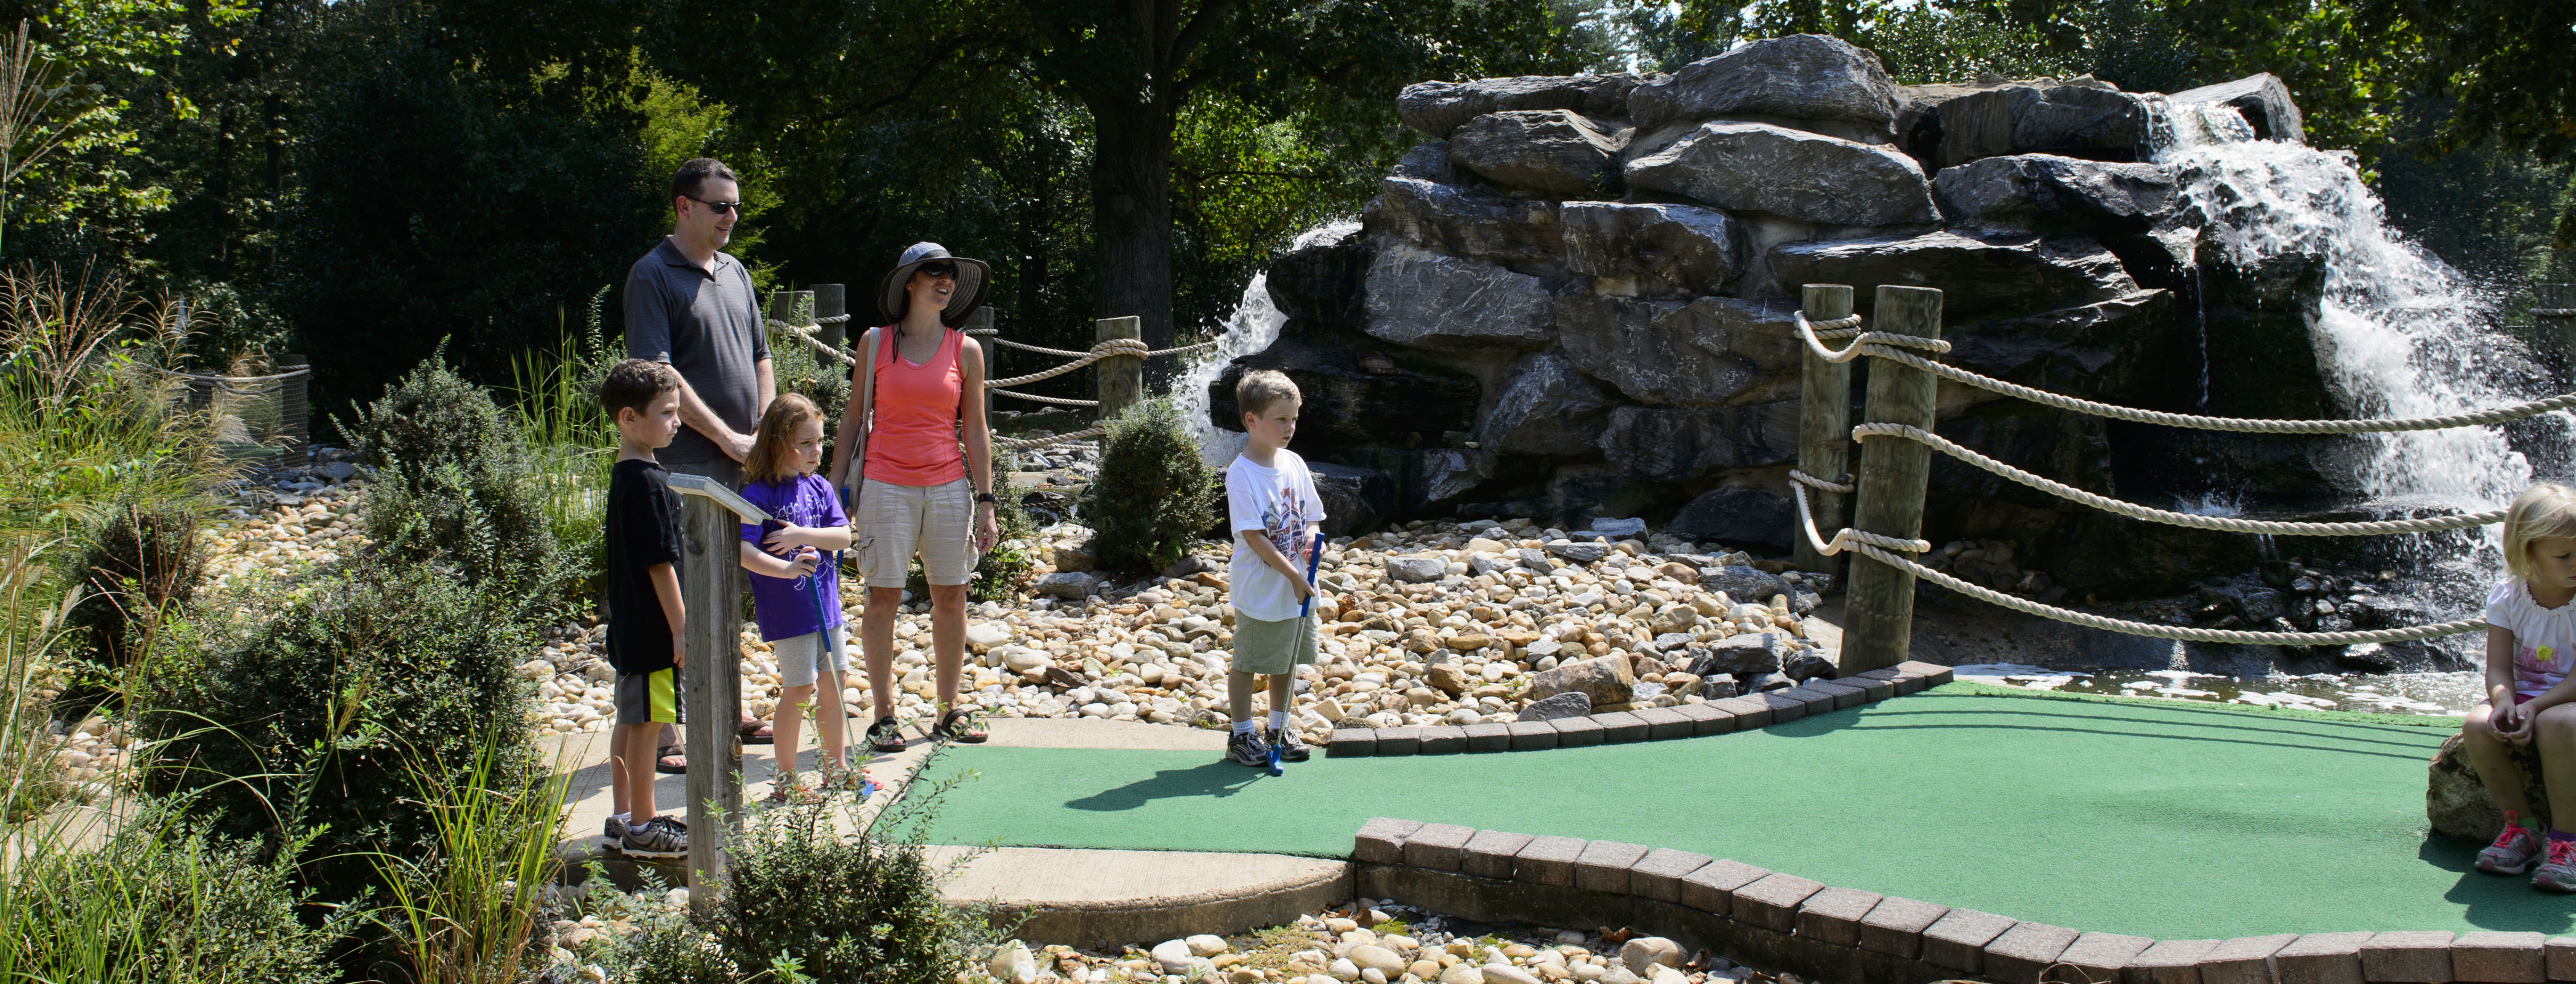 Burke Lake Mini Golf